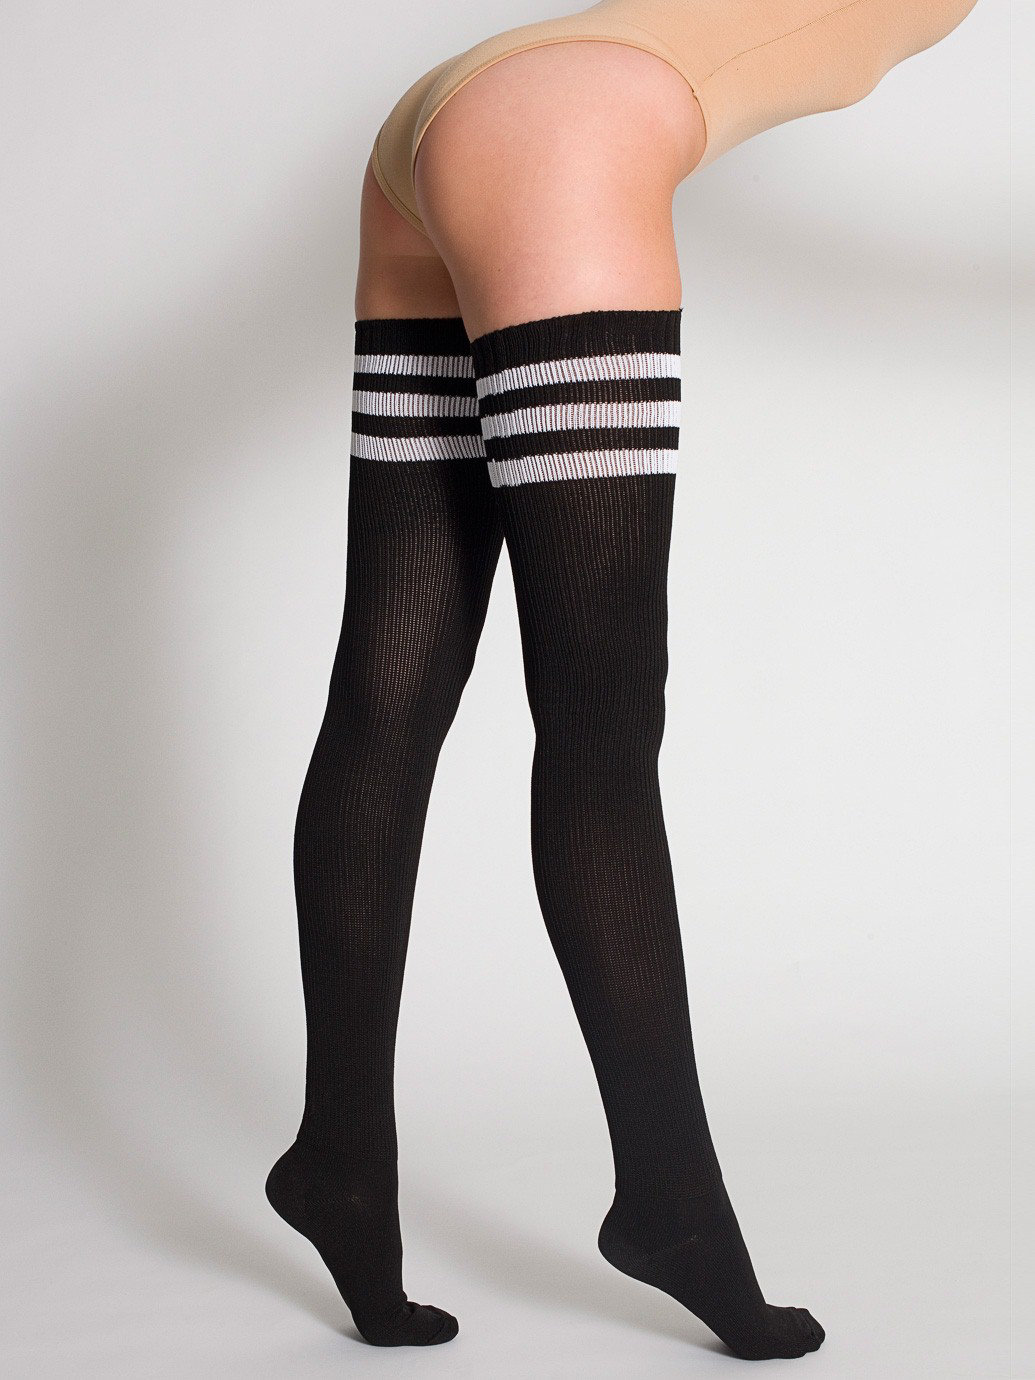 BEST GIFTS FOR FRIENDS: Thigh high socks are the ideal complement to Kayhoma Extra Long Cotton Thigh High Socks Over the Knee High Boot Stockings Cotton Leg Warmers. by Kayhoma. $ - $ $ 11 $ 17 99 Prime. FREE Shipping on .